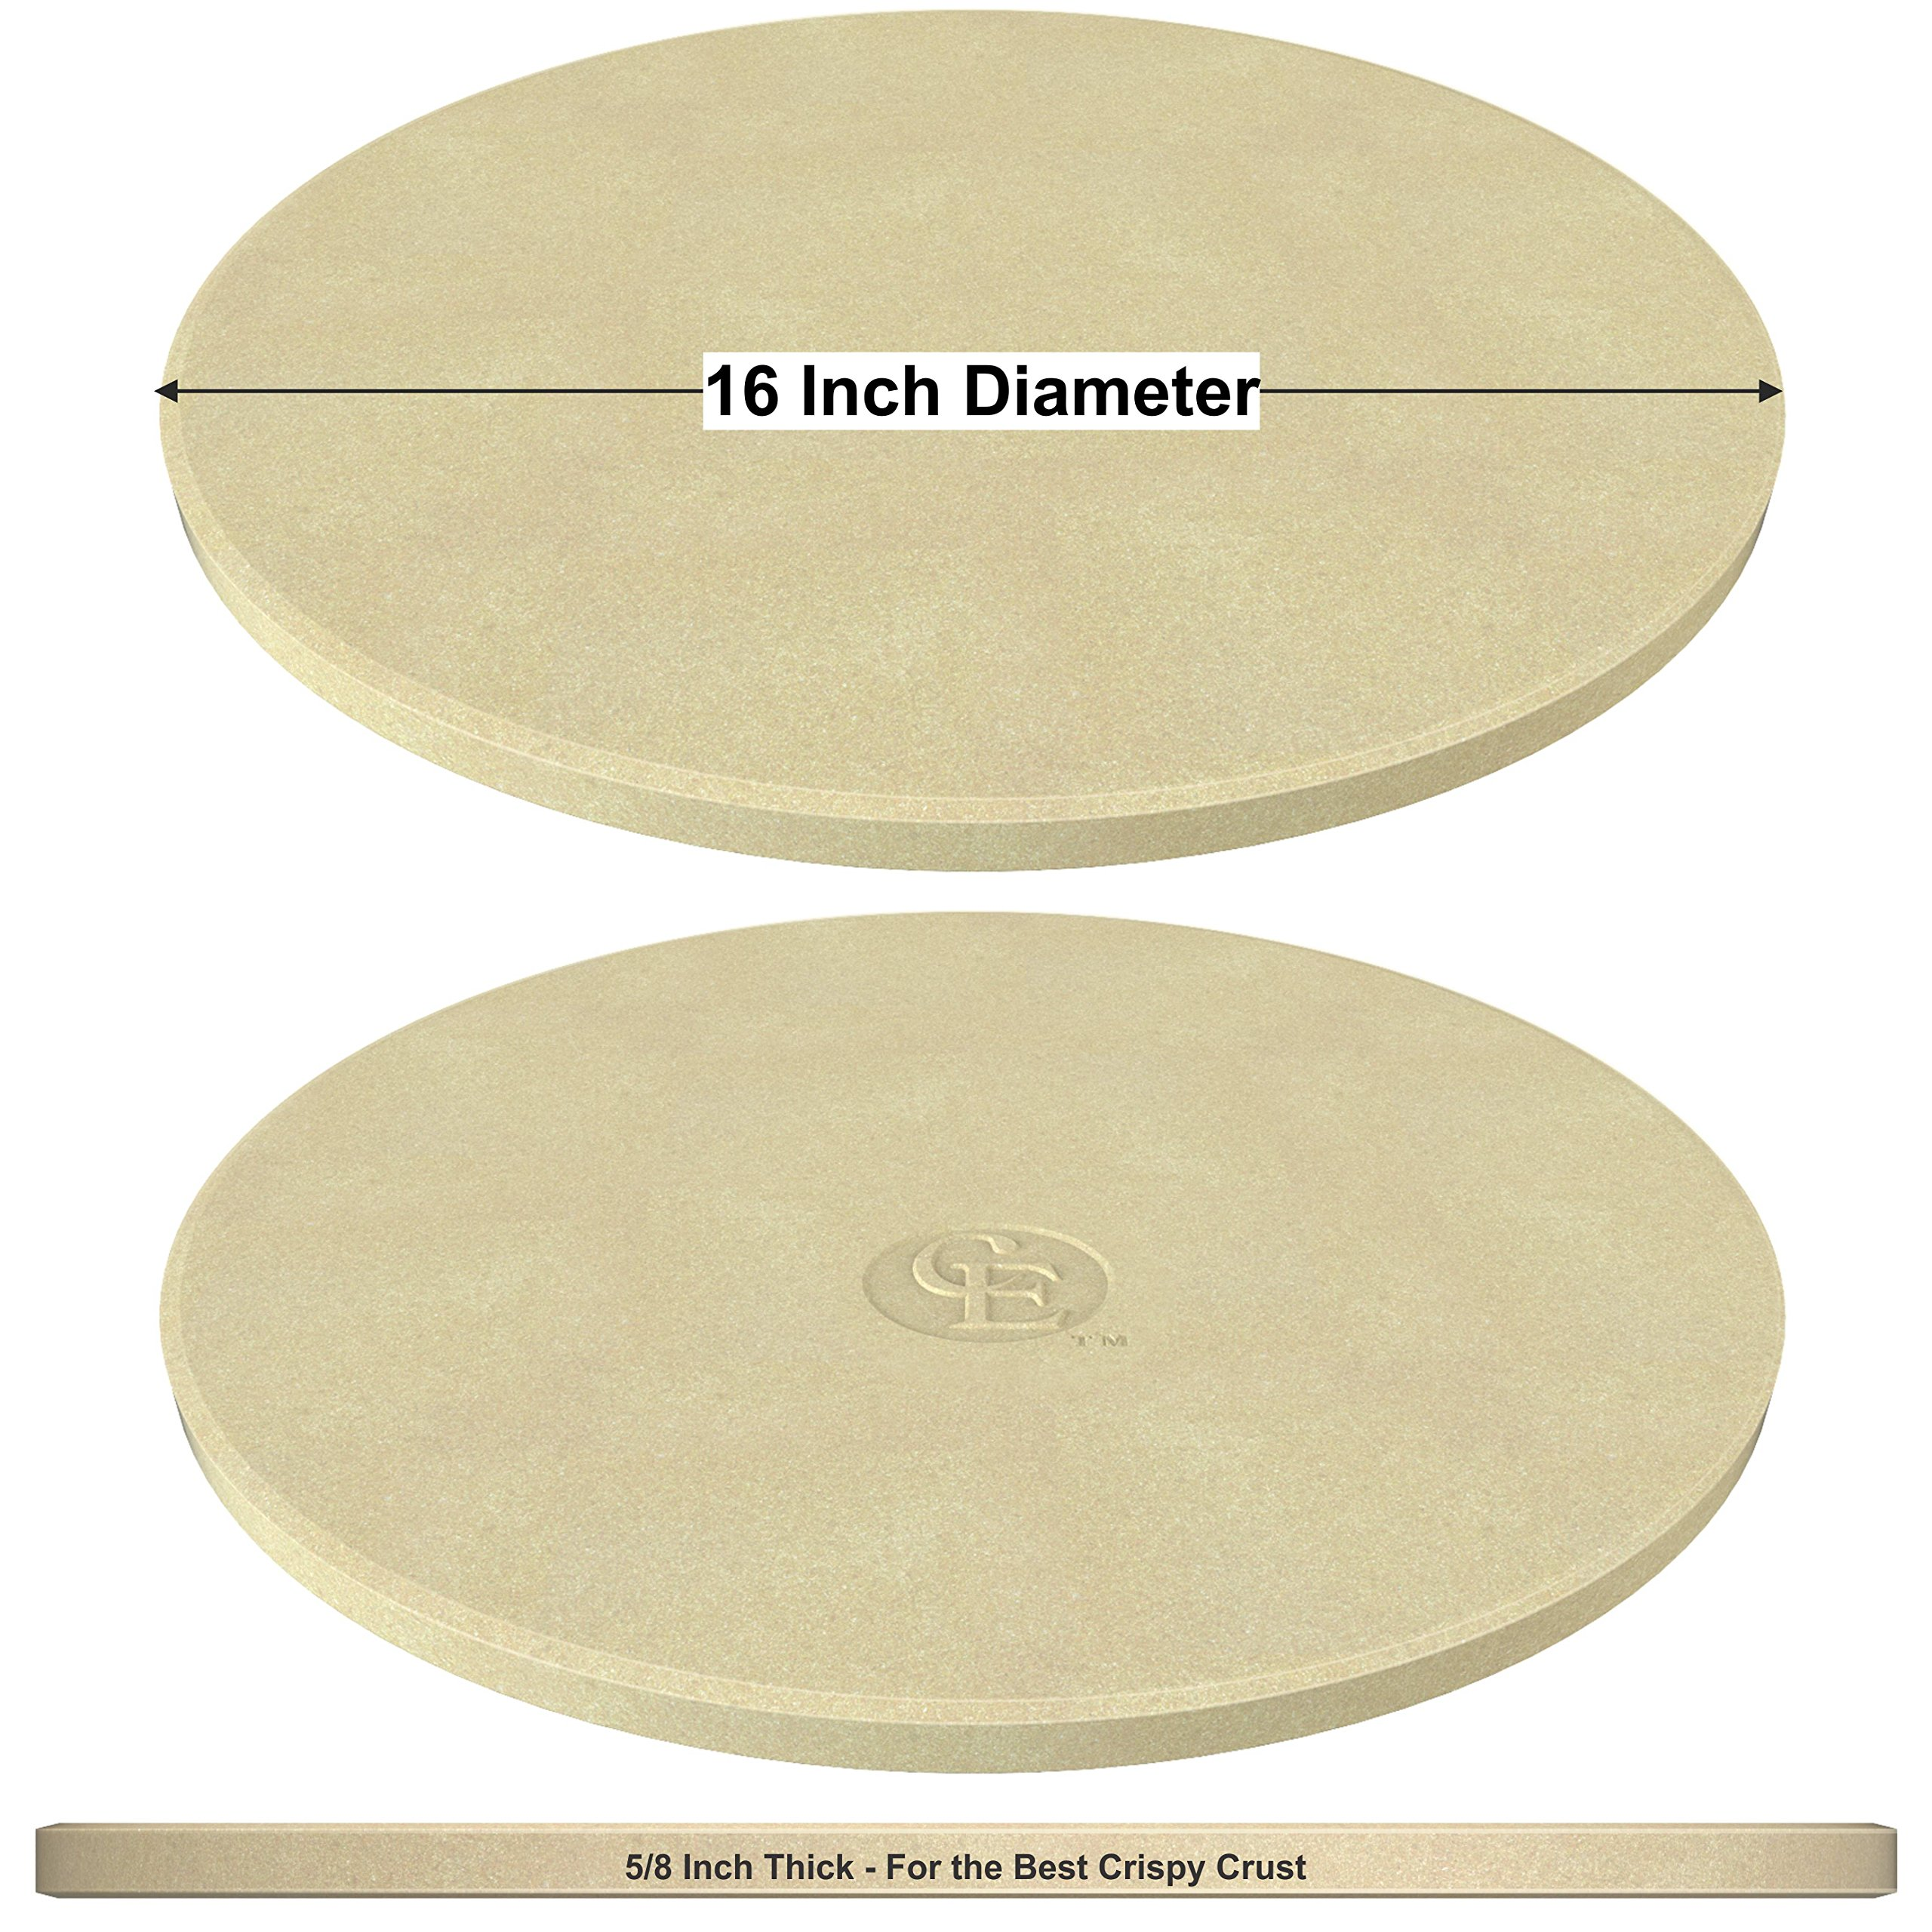 Pizza Stone for Best Crispy Crust Pizza, The Only Stoneware with Thermarite (Engineered Tuff Cordierite). Durable, Certified Safe, Ovens & Grills 16 Round, Bonus Recipe Ebook & Free Scraper by CastElegance (Image #9)